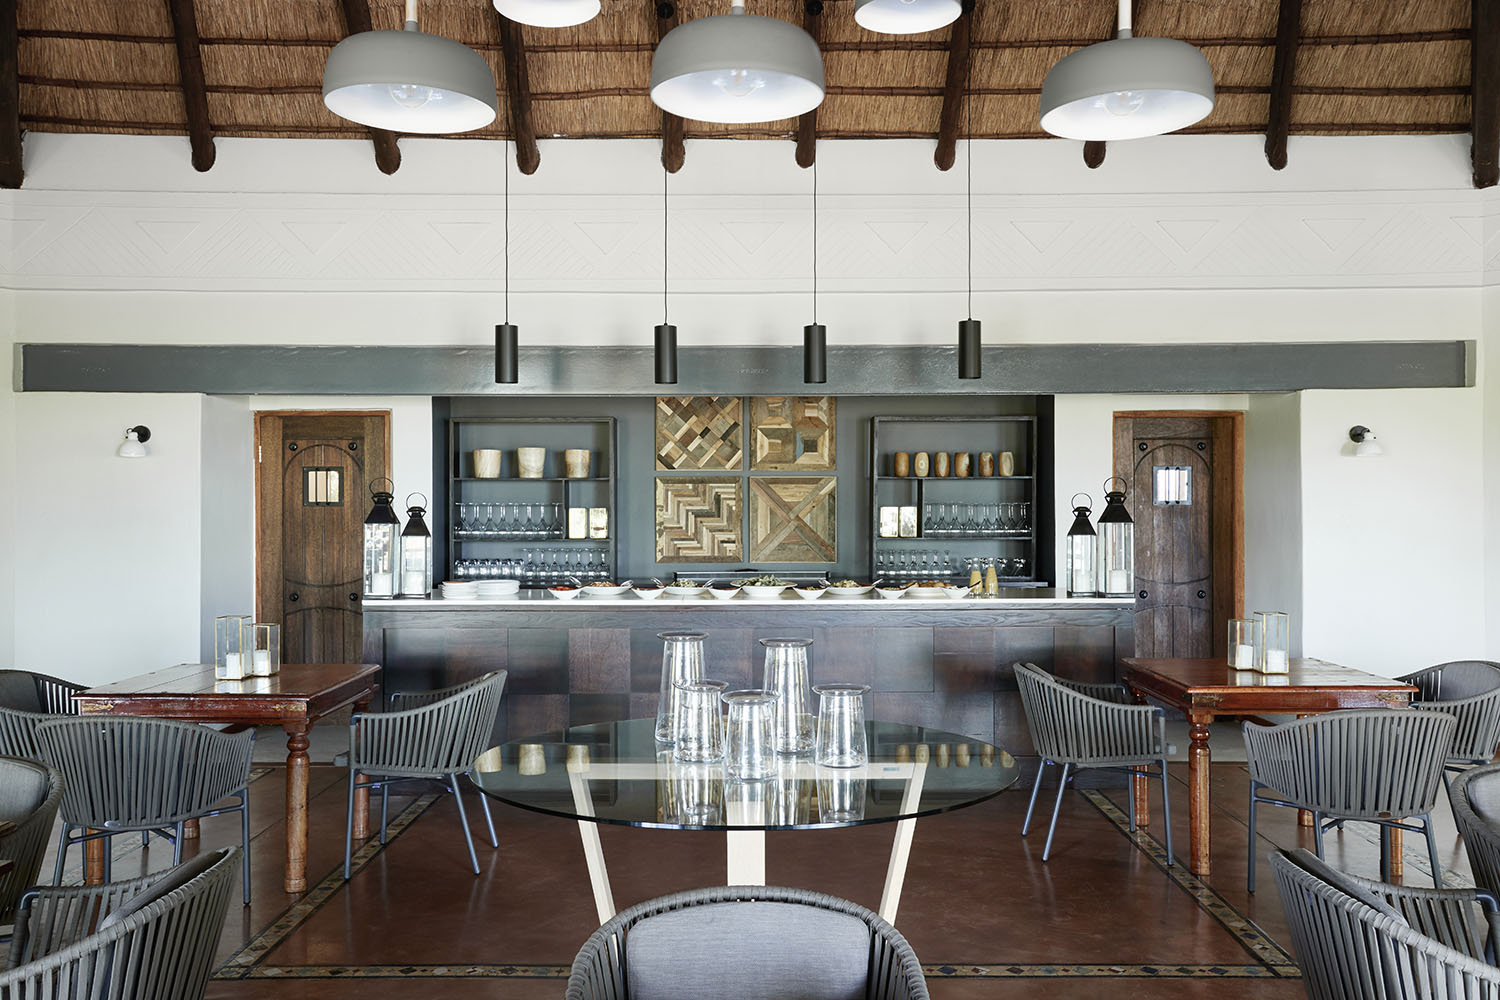 chobe chilwero botswana-lodges-zambia-in-style-chobe-national-park-lodge-dining-hall